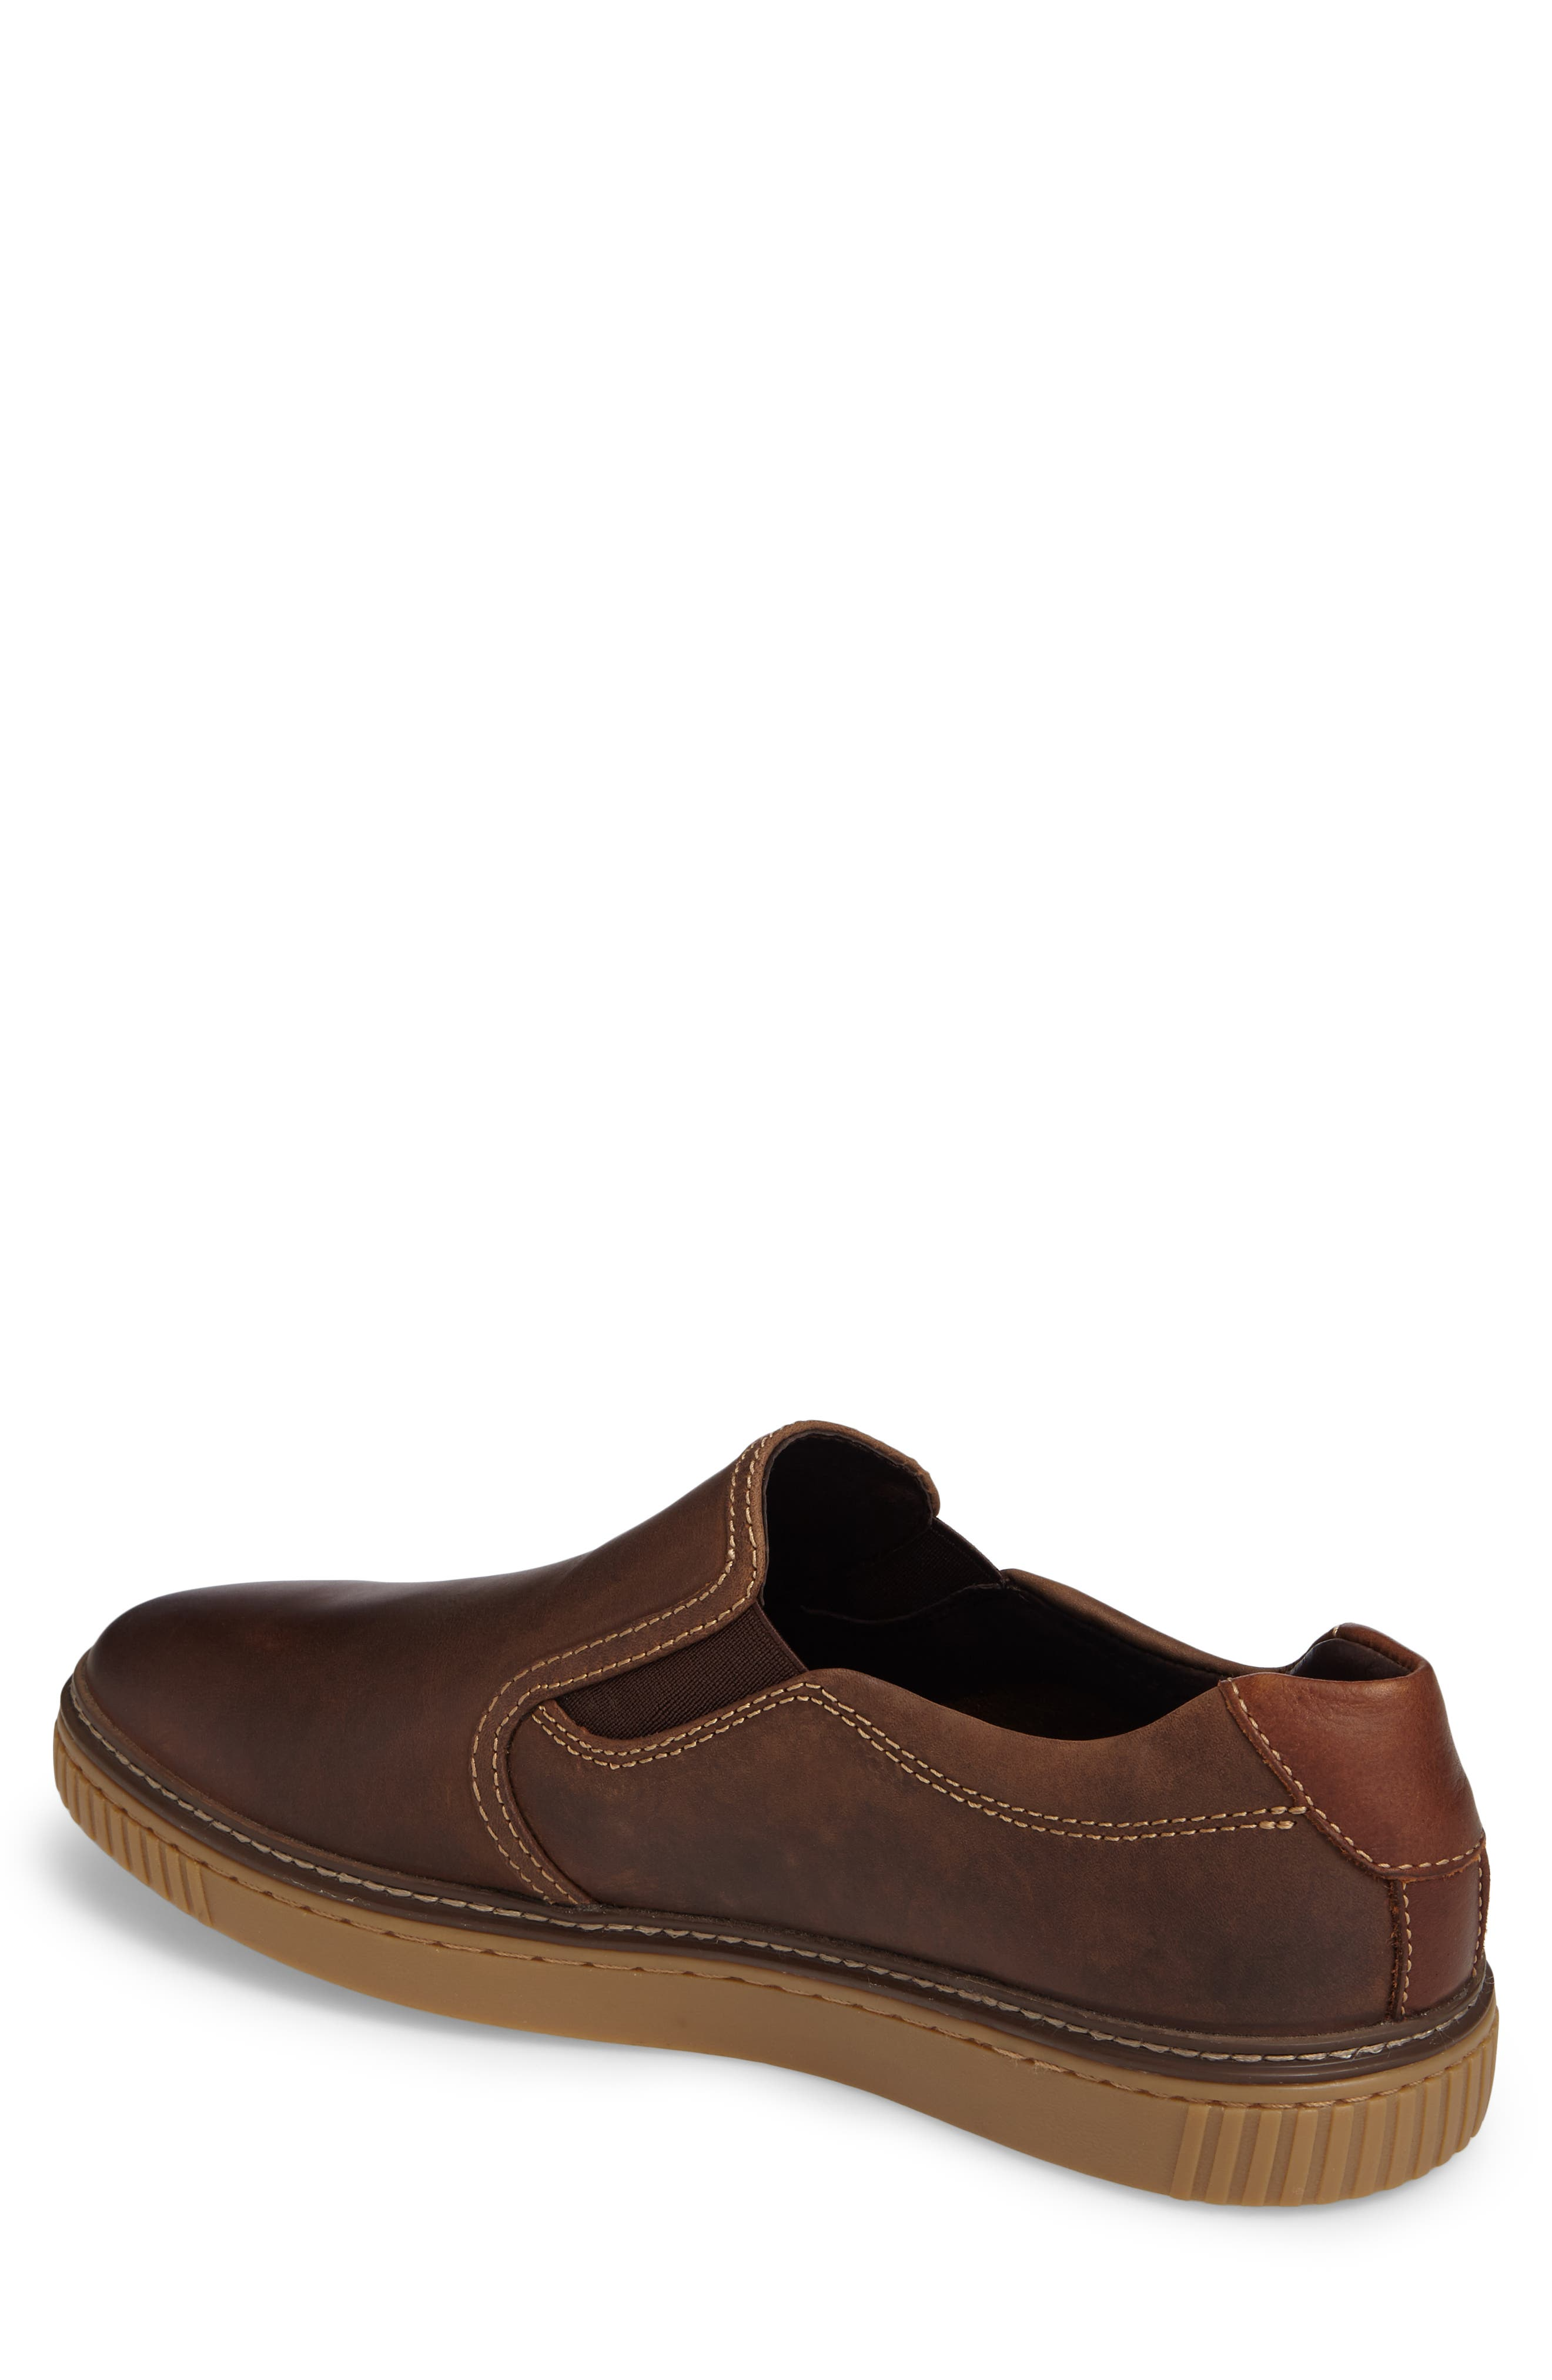 Wallace Slip-On Sneaker,                             Alternate thumbnail 2, color,                             Brown